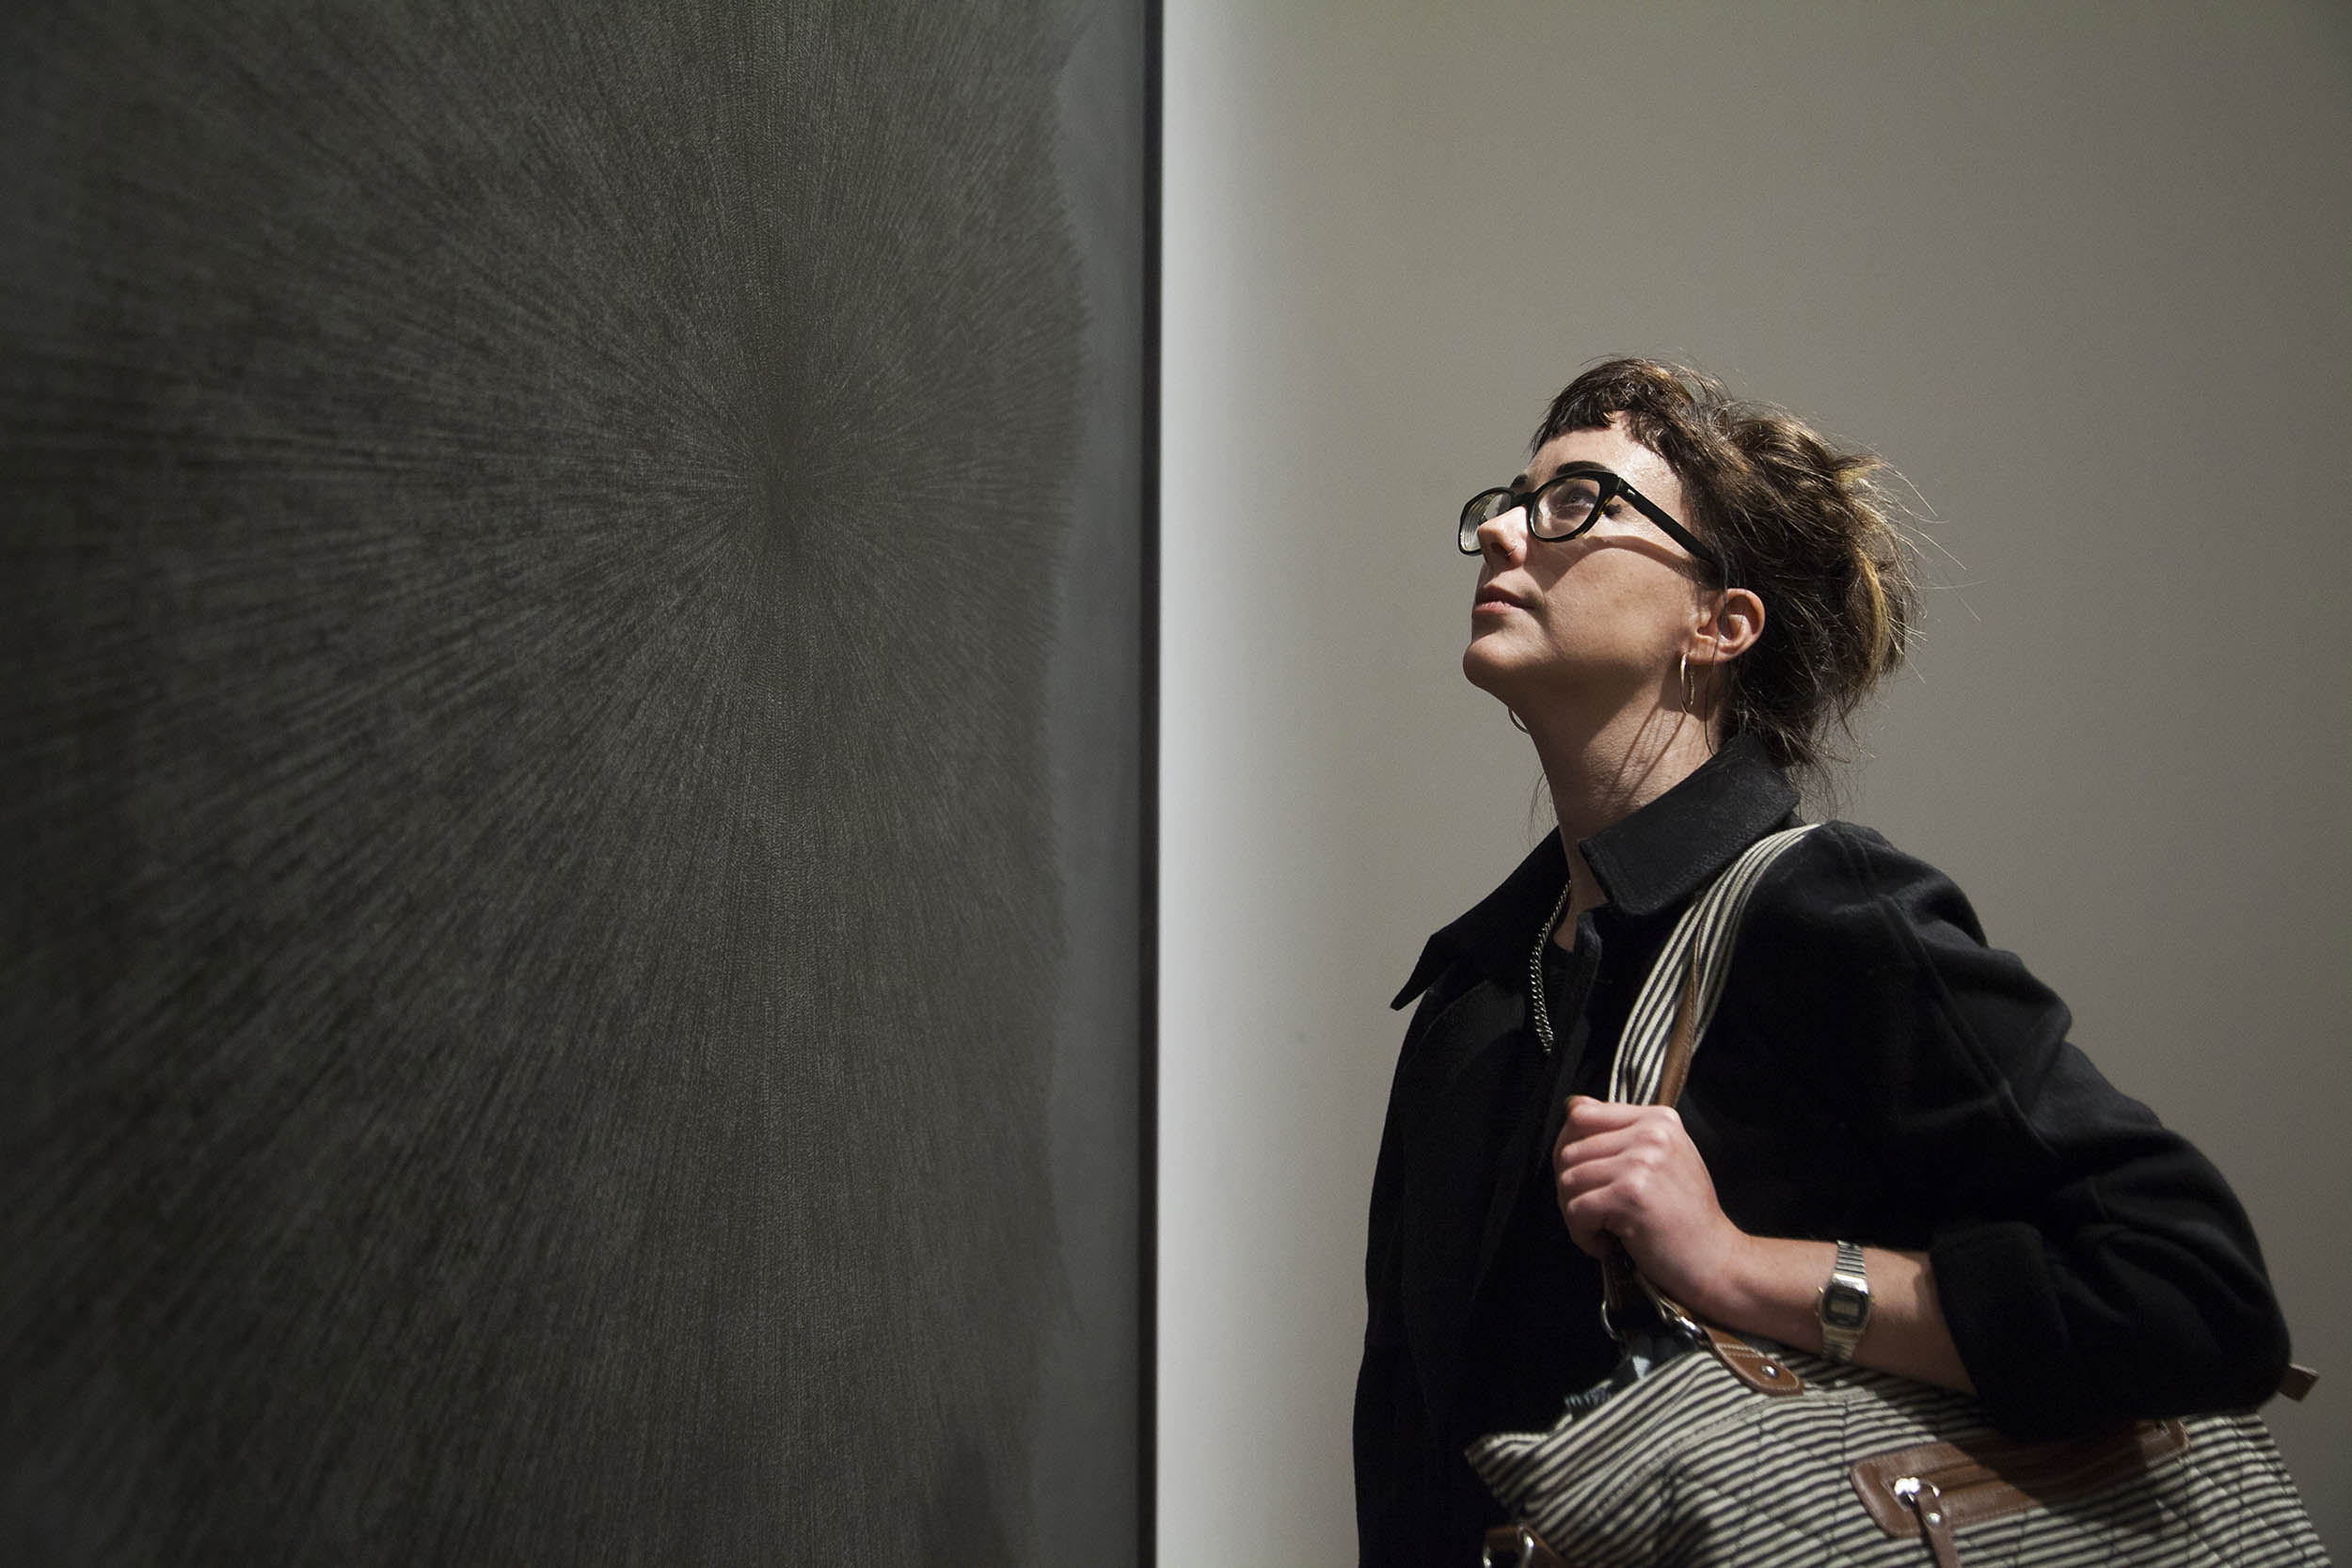 A documentary photograph of the public looking at artworks during an art opening.  Photography commissioned by Whitworth Art Gallery, Manchester